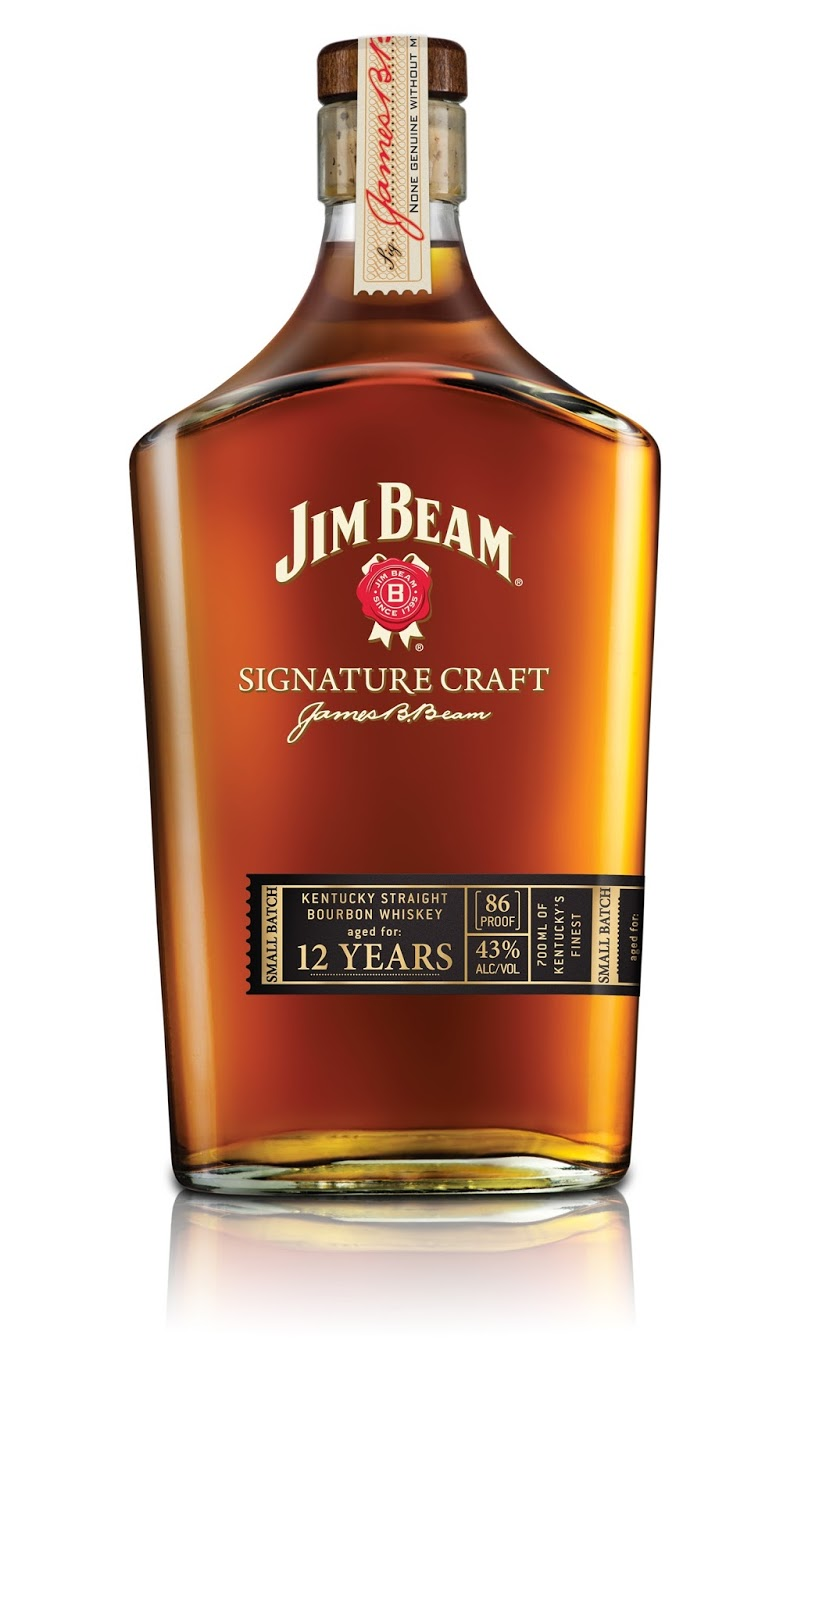 Jim Beam Signature Craft 12 Years – ein Premium Bourbon Whiskey mit Geschichte | Review